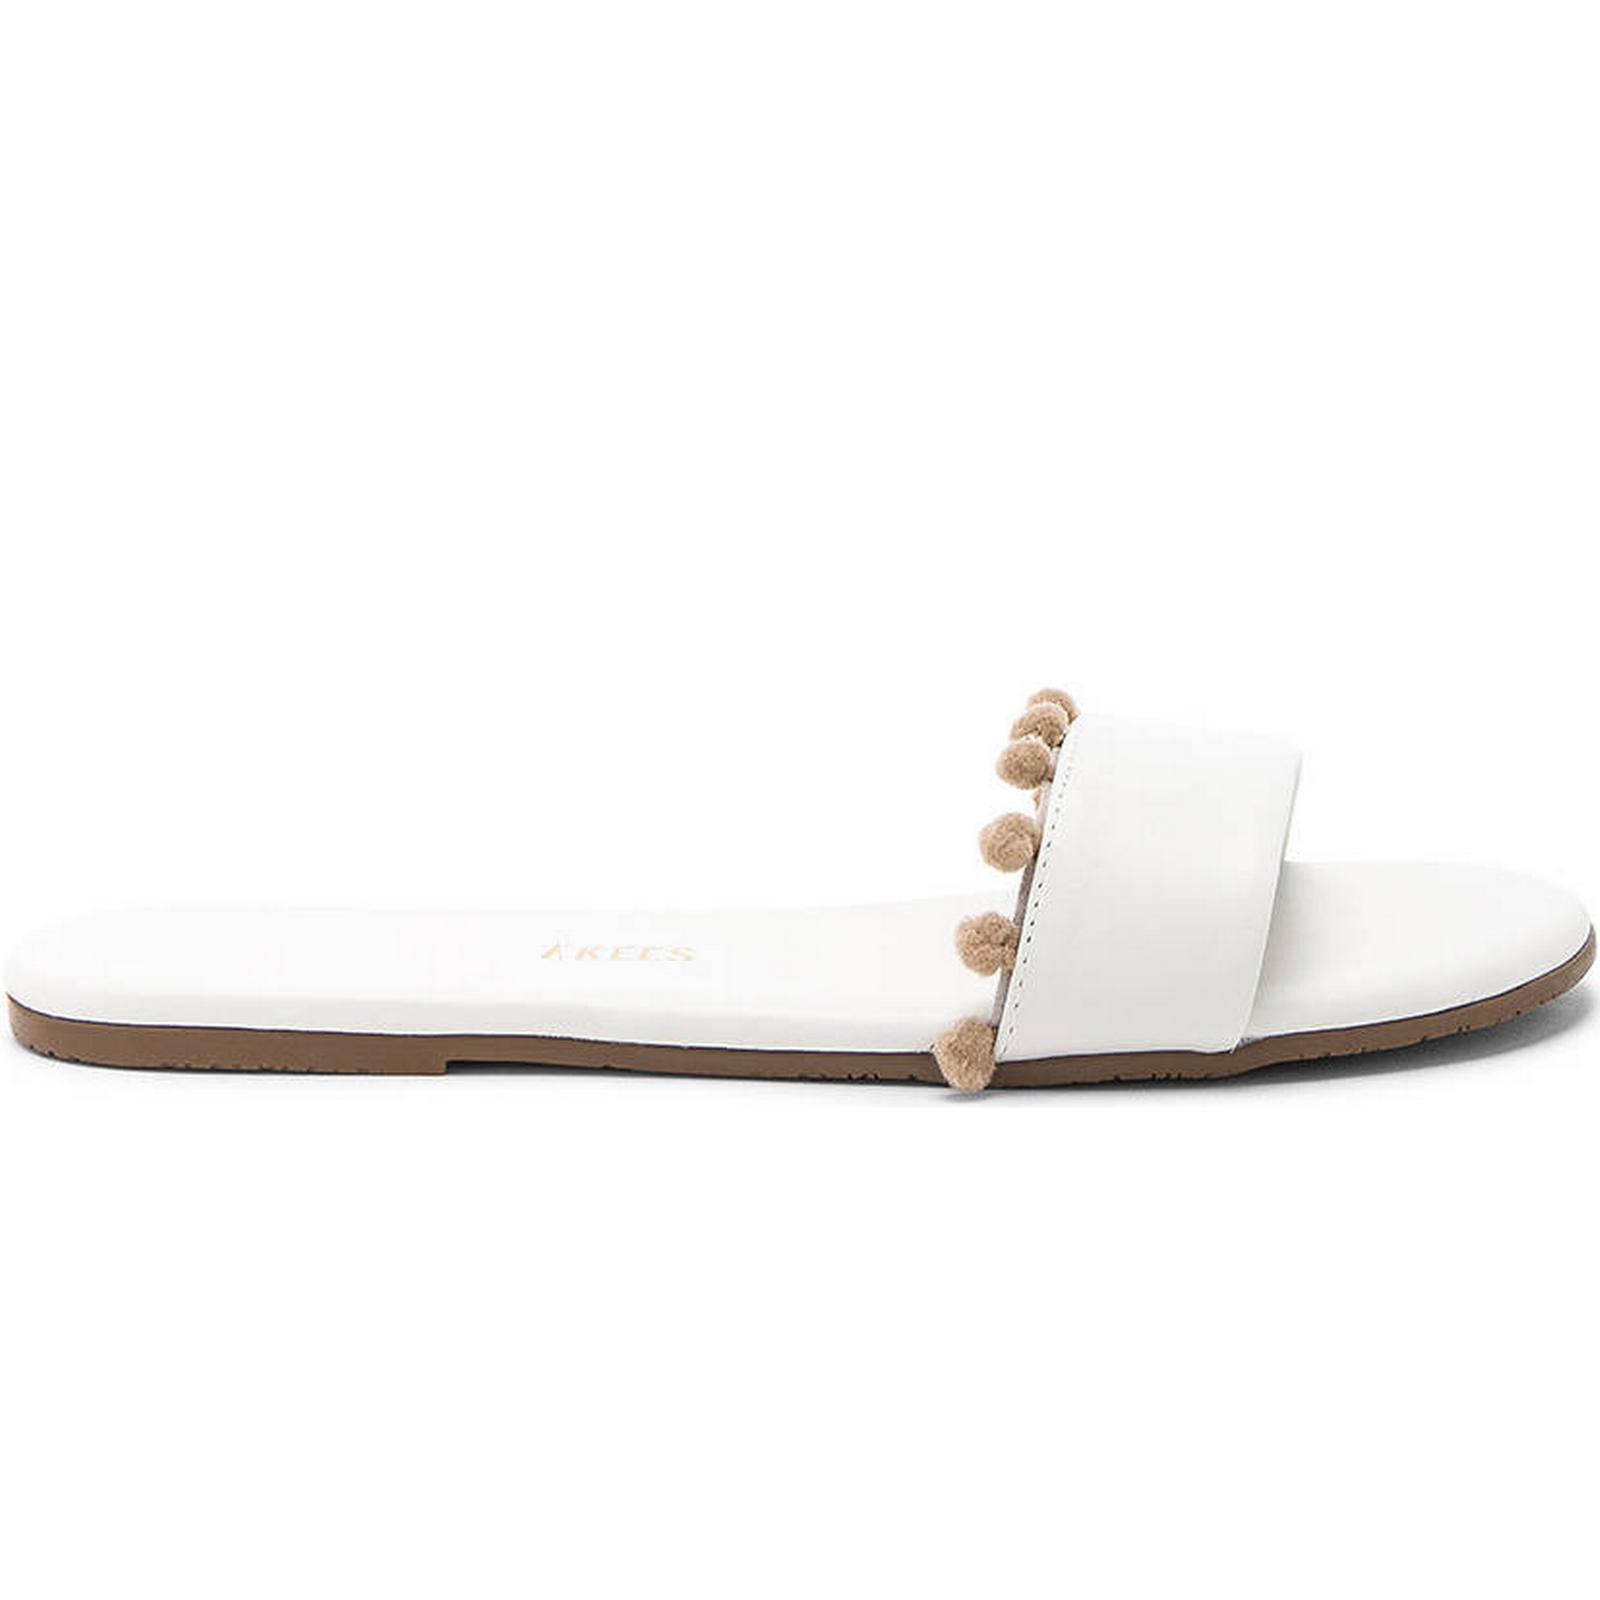 Mr/Ms:TKEES Mr/Ms:TKEES Mr/Ms:TKEES Alex Sandal:Not so expensive 413904